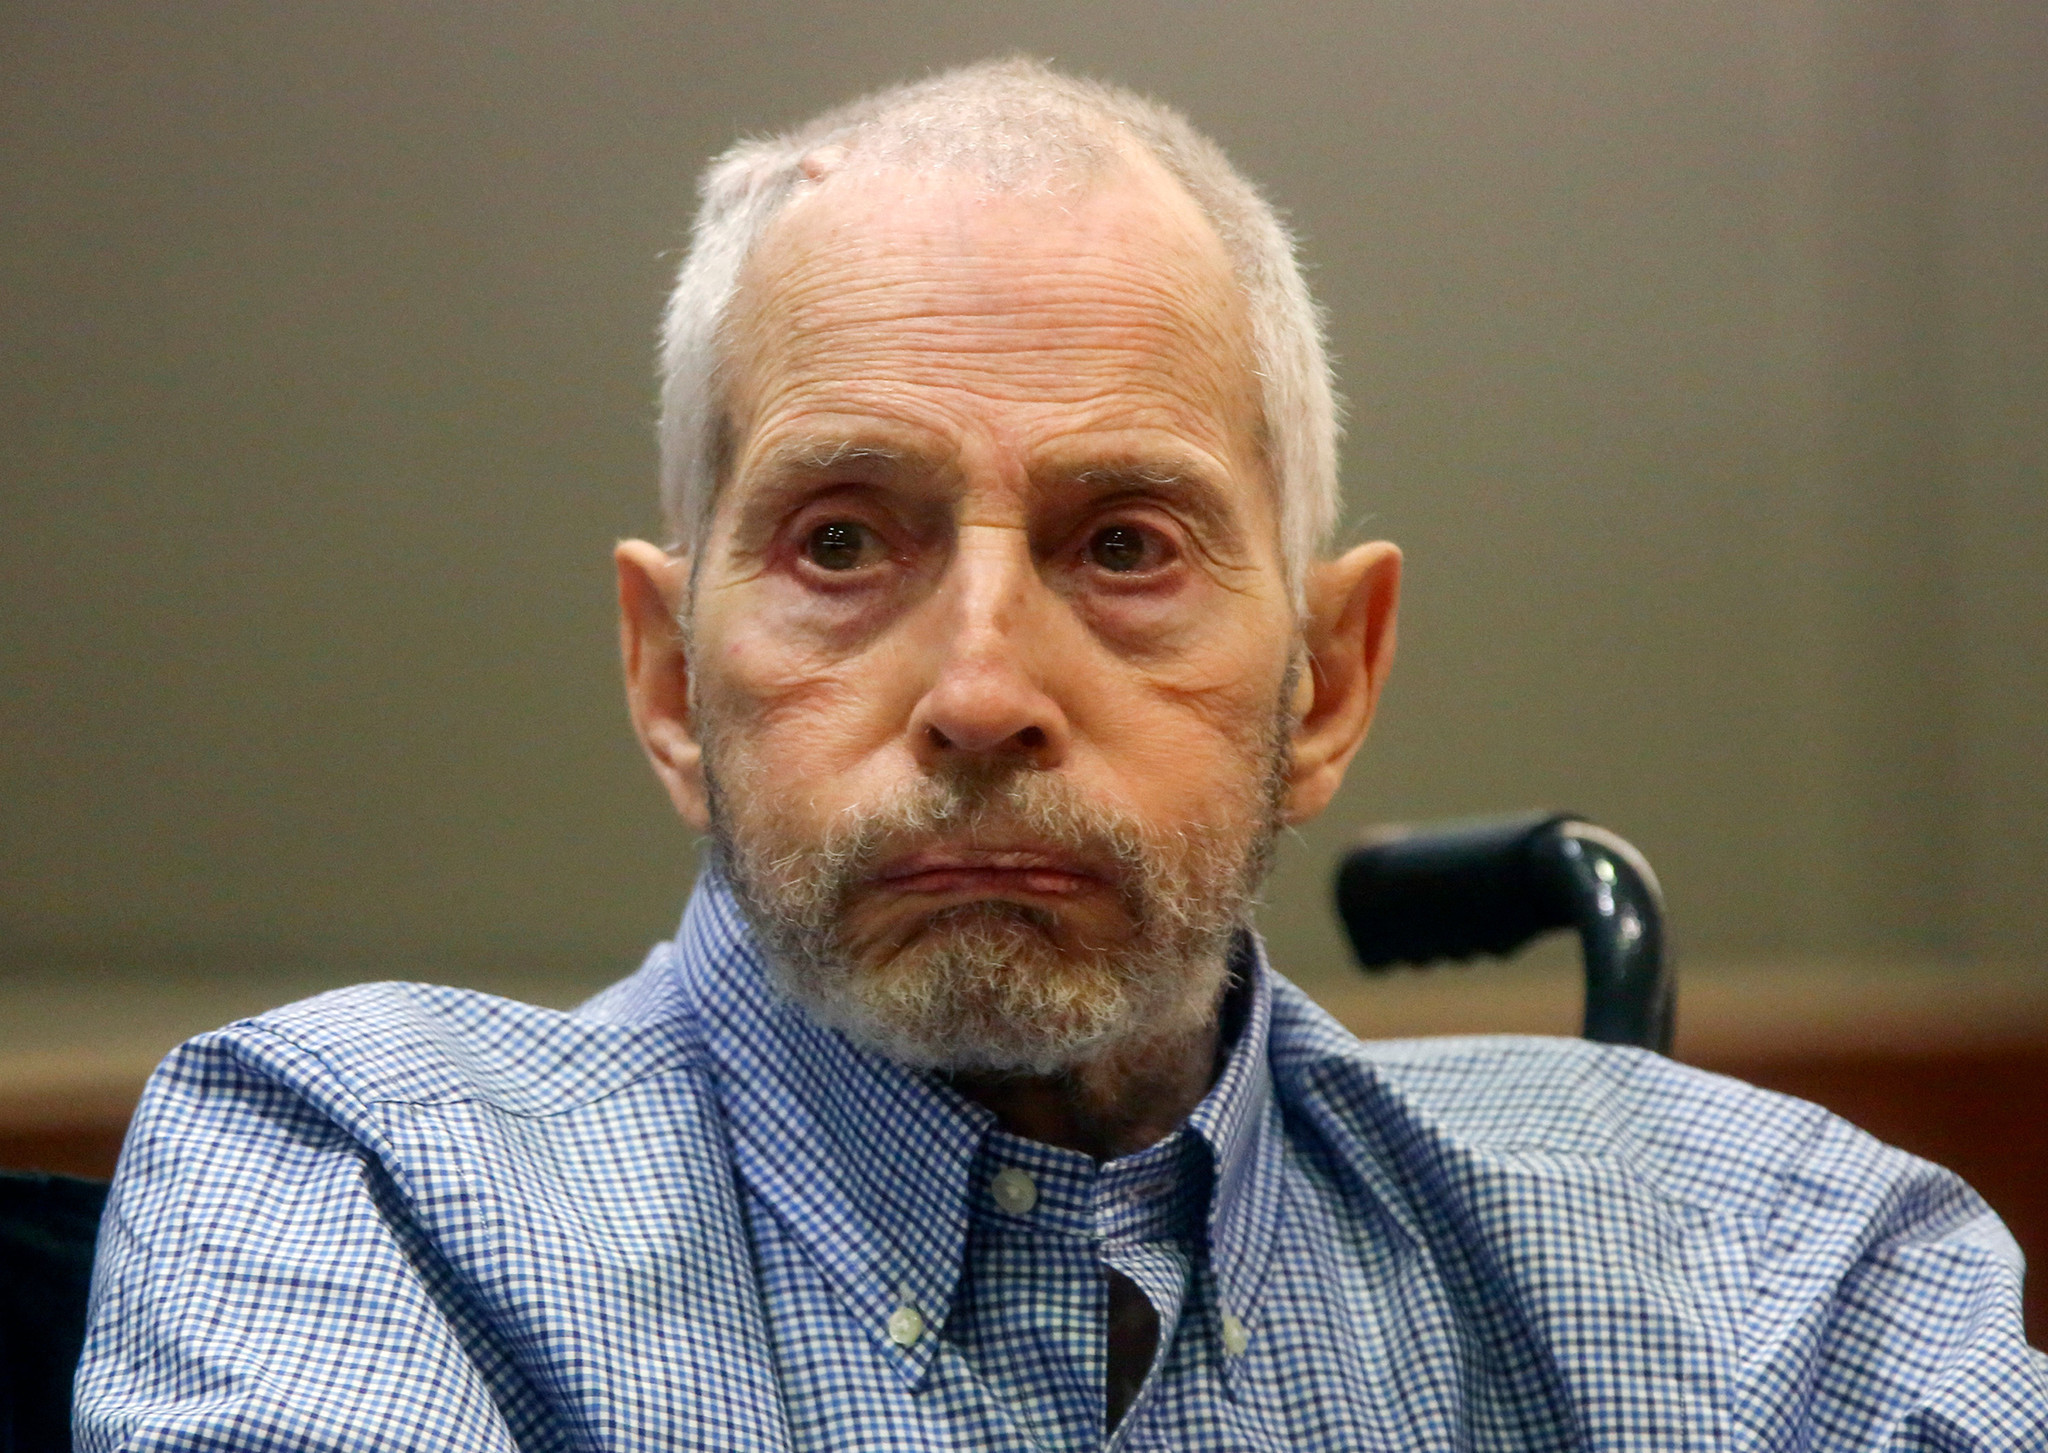 Robert Durst murder trial jurors can hear evidence he 'coerced' first wife Kathie Durst into abortion, judge rules